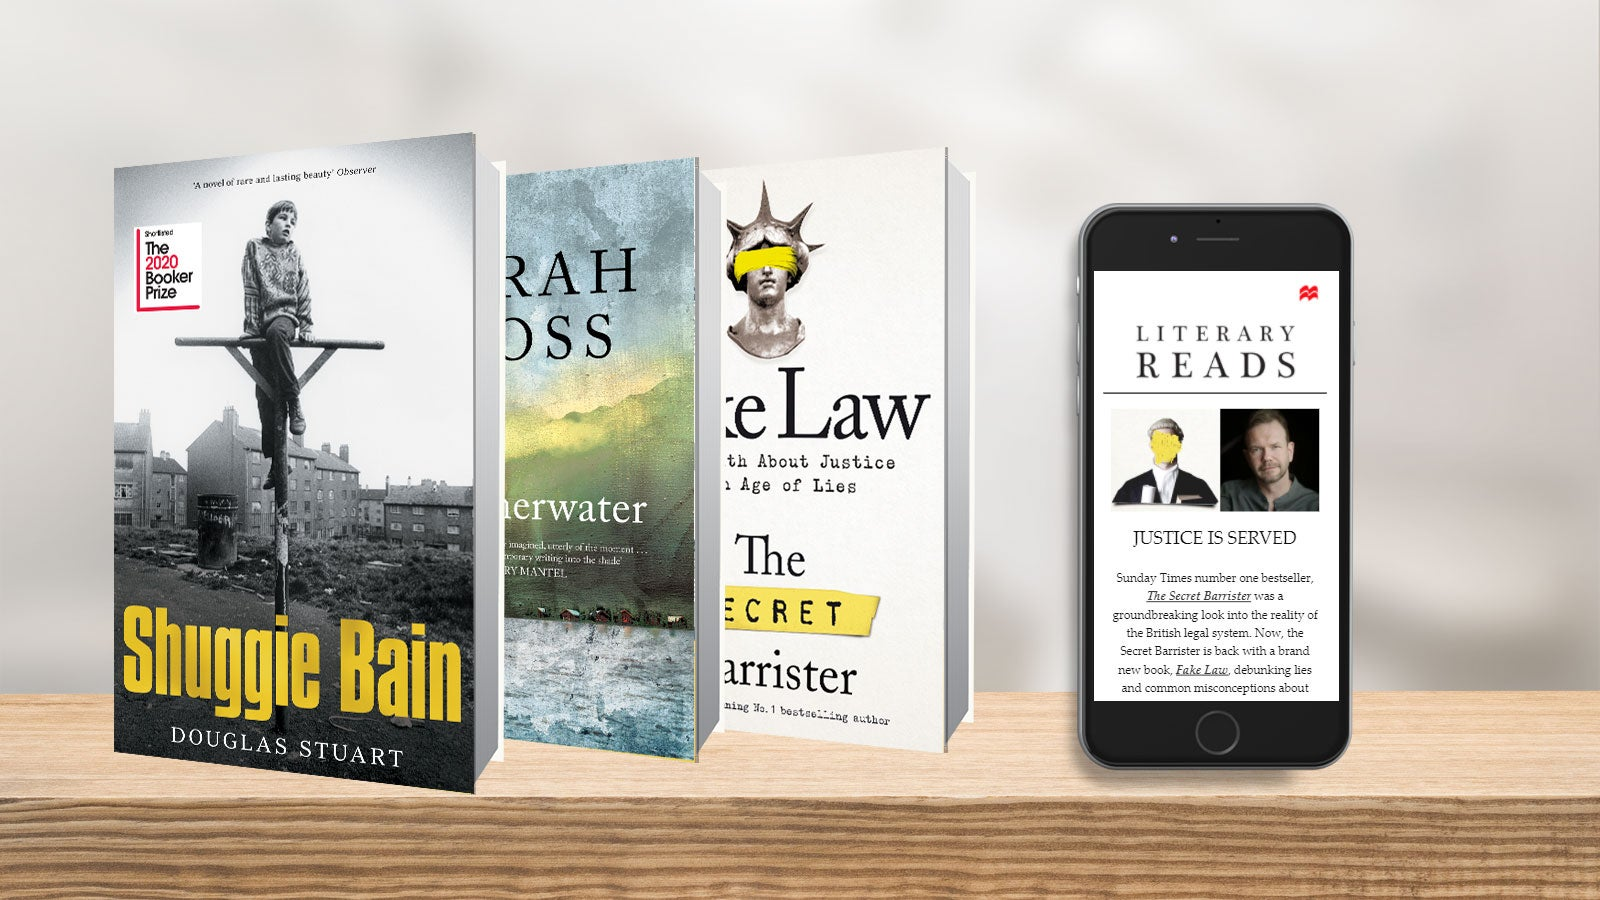 Shuggie Bain, Summerwater and Fake Law beside an iPhone displaying the Literary Reads newsletter.